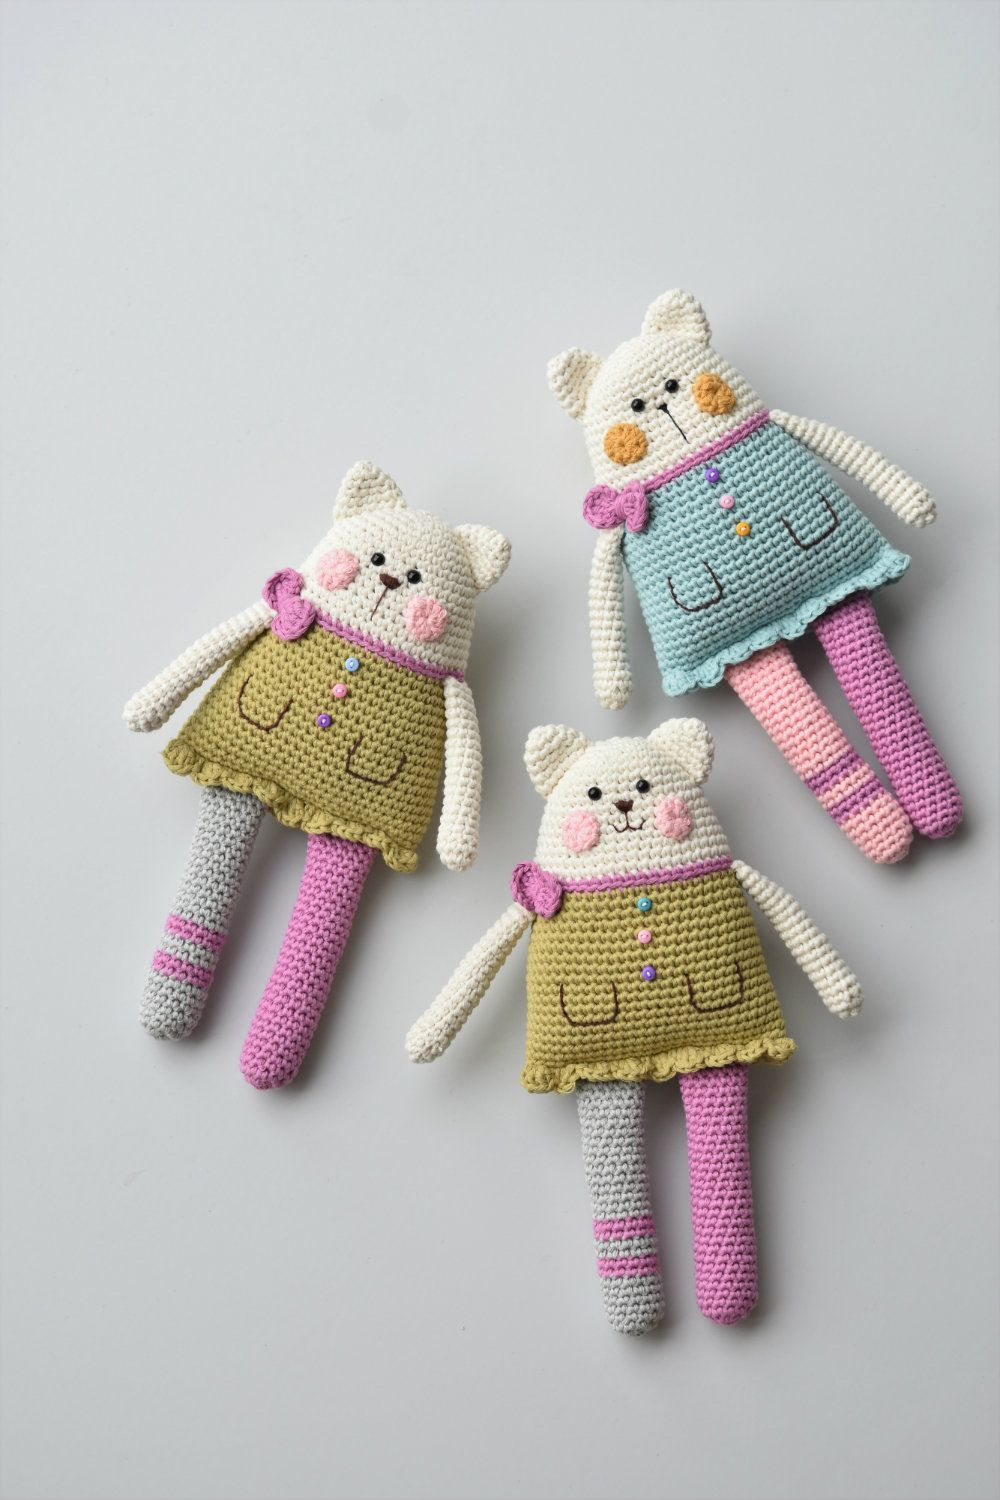 Cuddly Amigurumi Toys: 15 New Crochet Projects by Lilleliis: Lille ... | 1500x1000